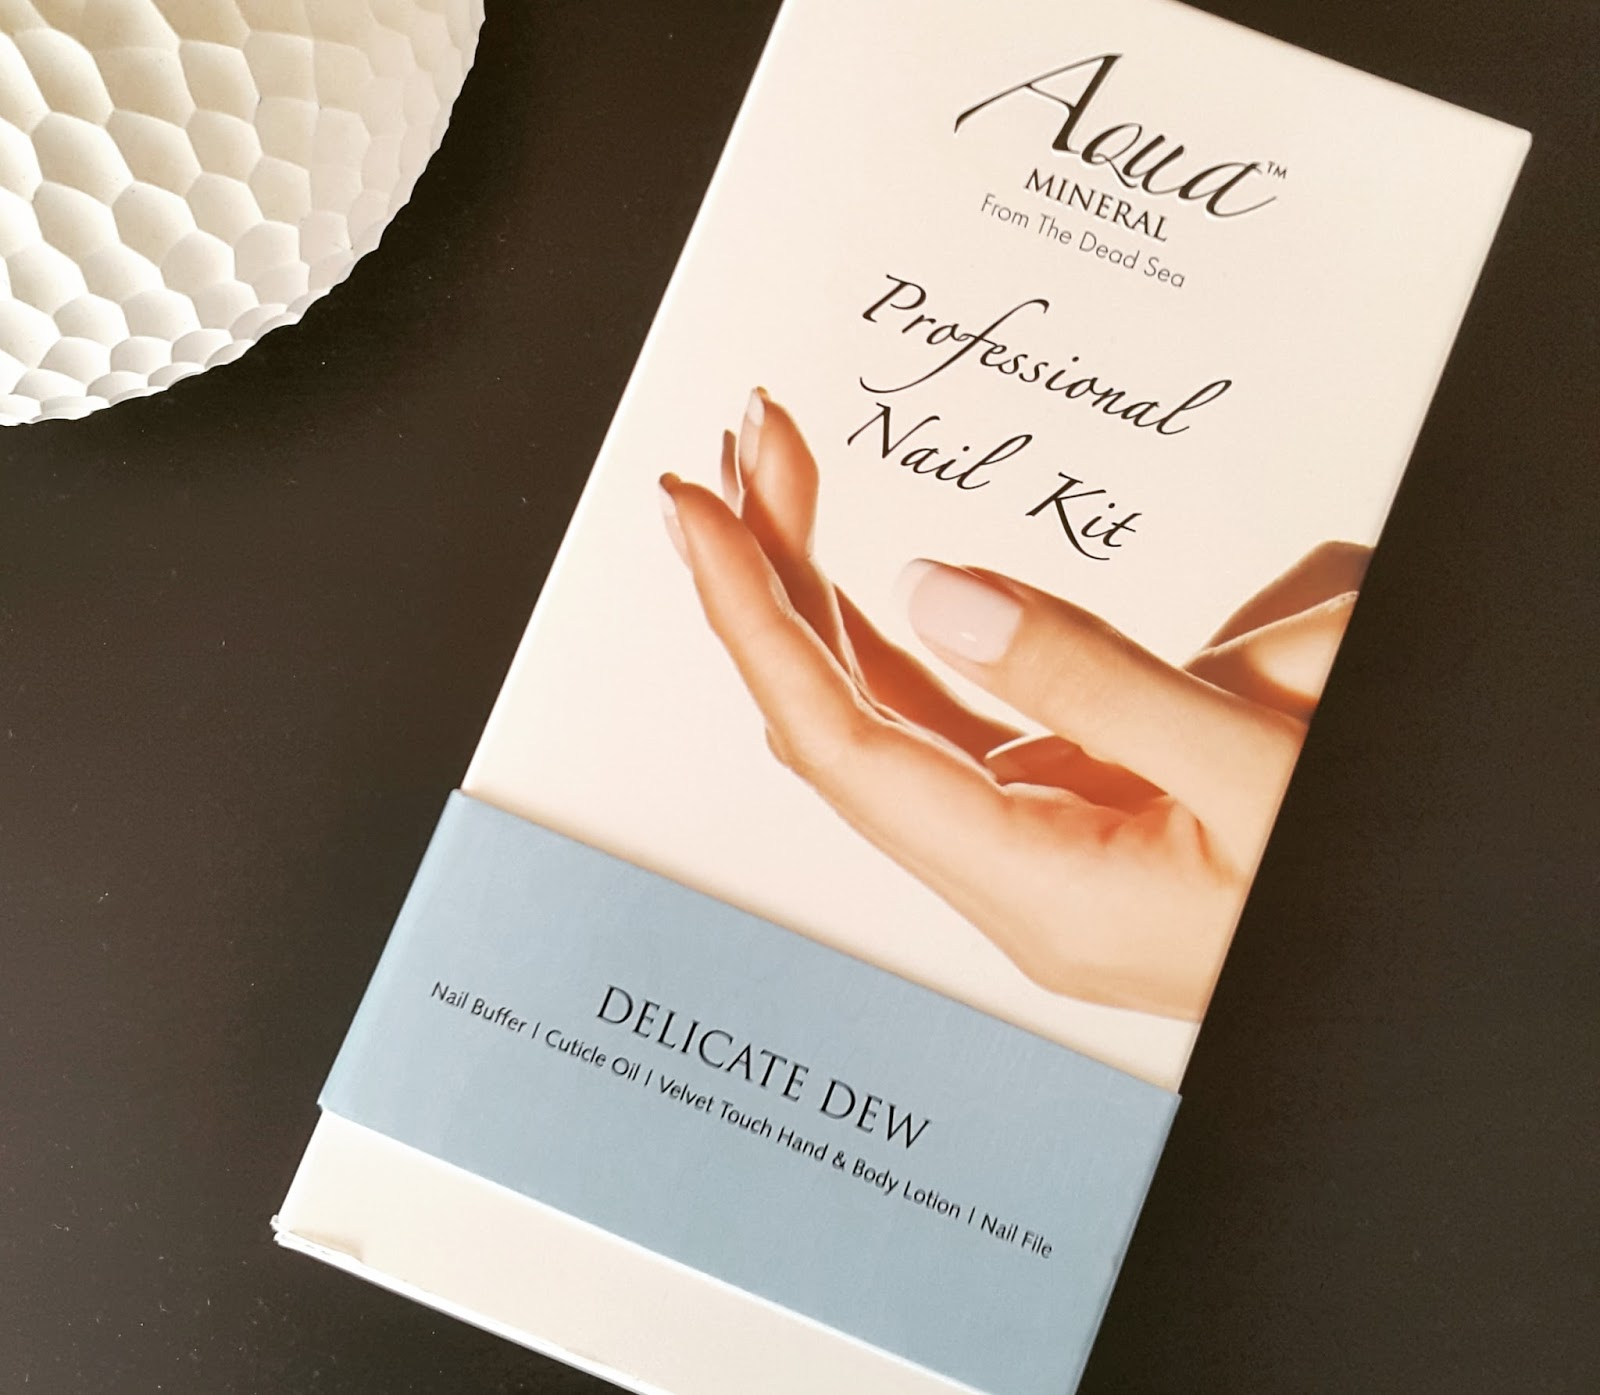 Aqua Mineral Delicate Dew Nail Care Kit - Insanely It